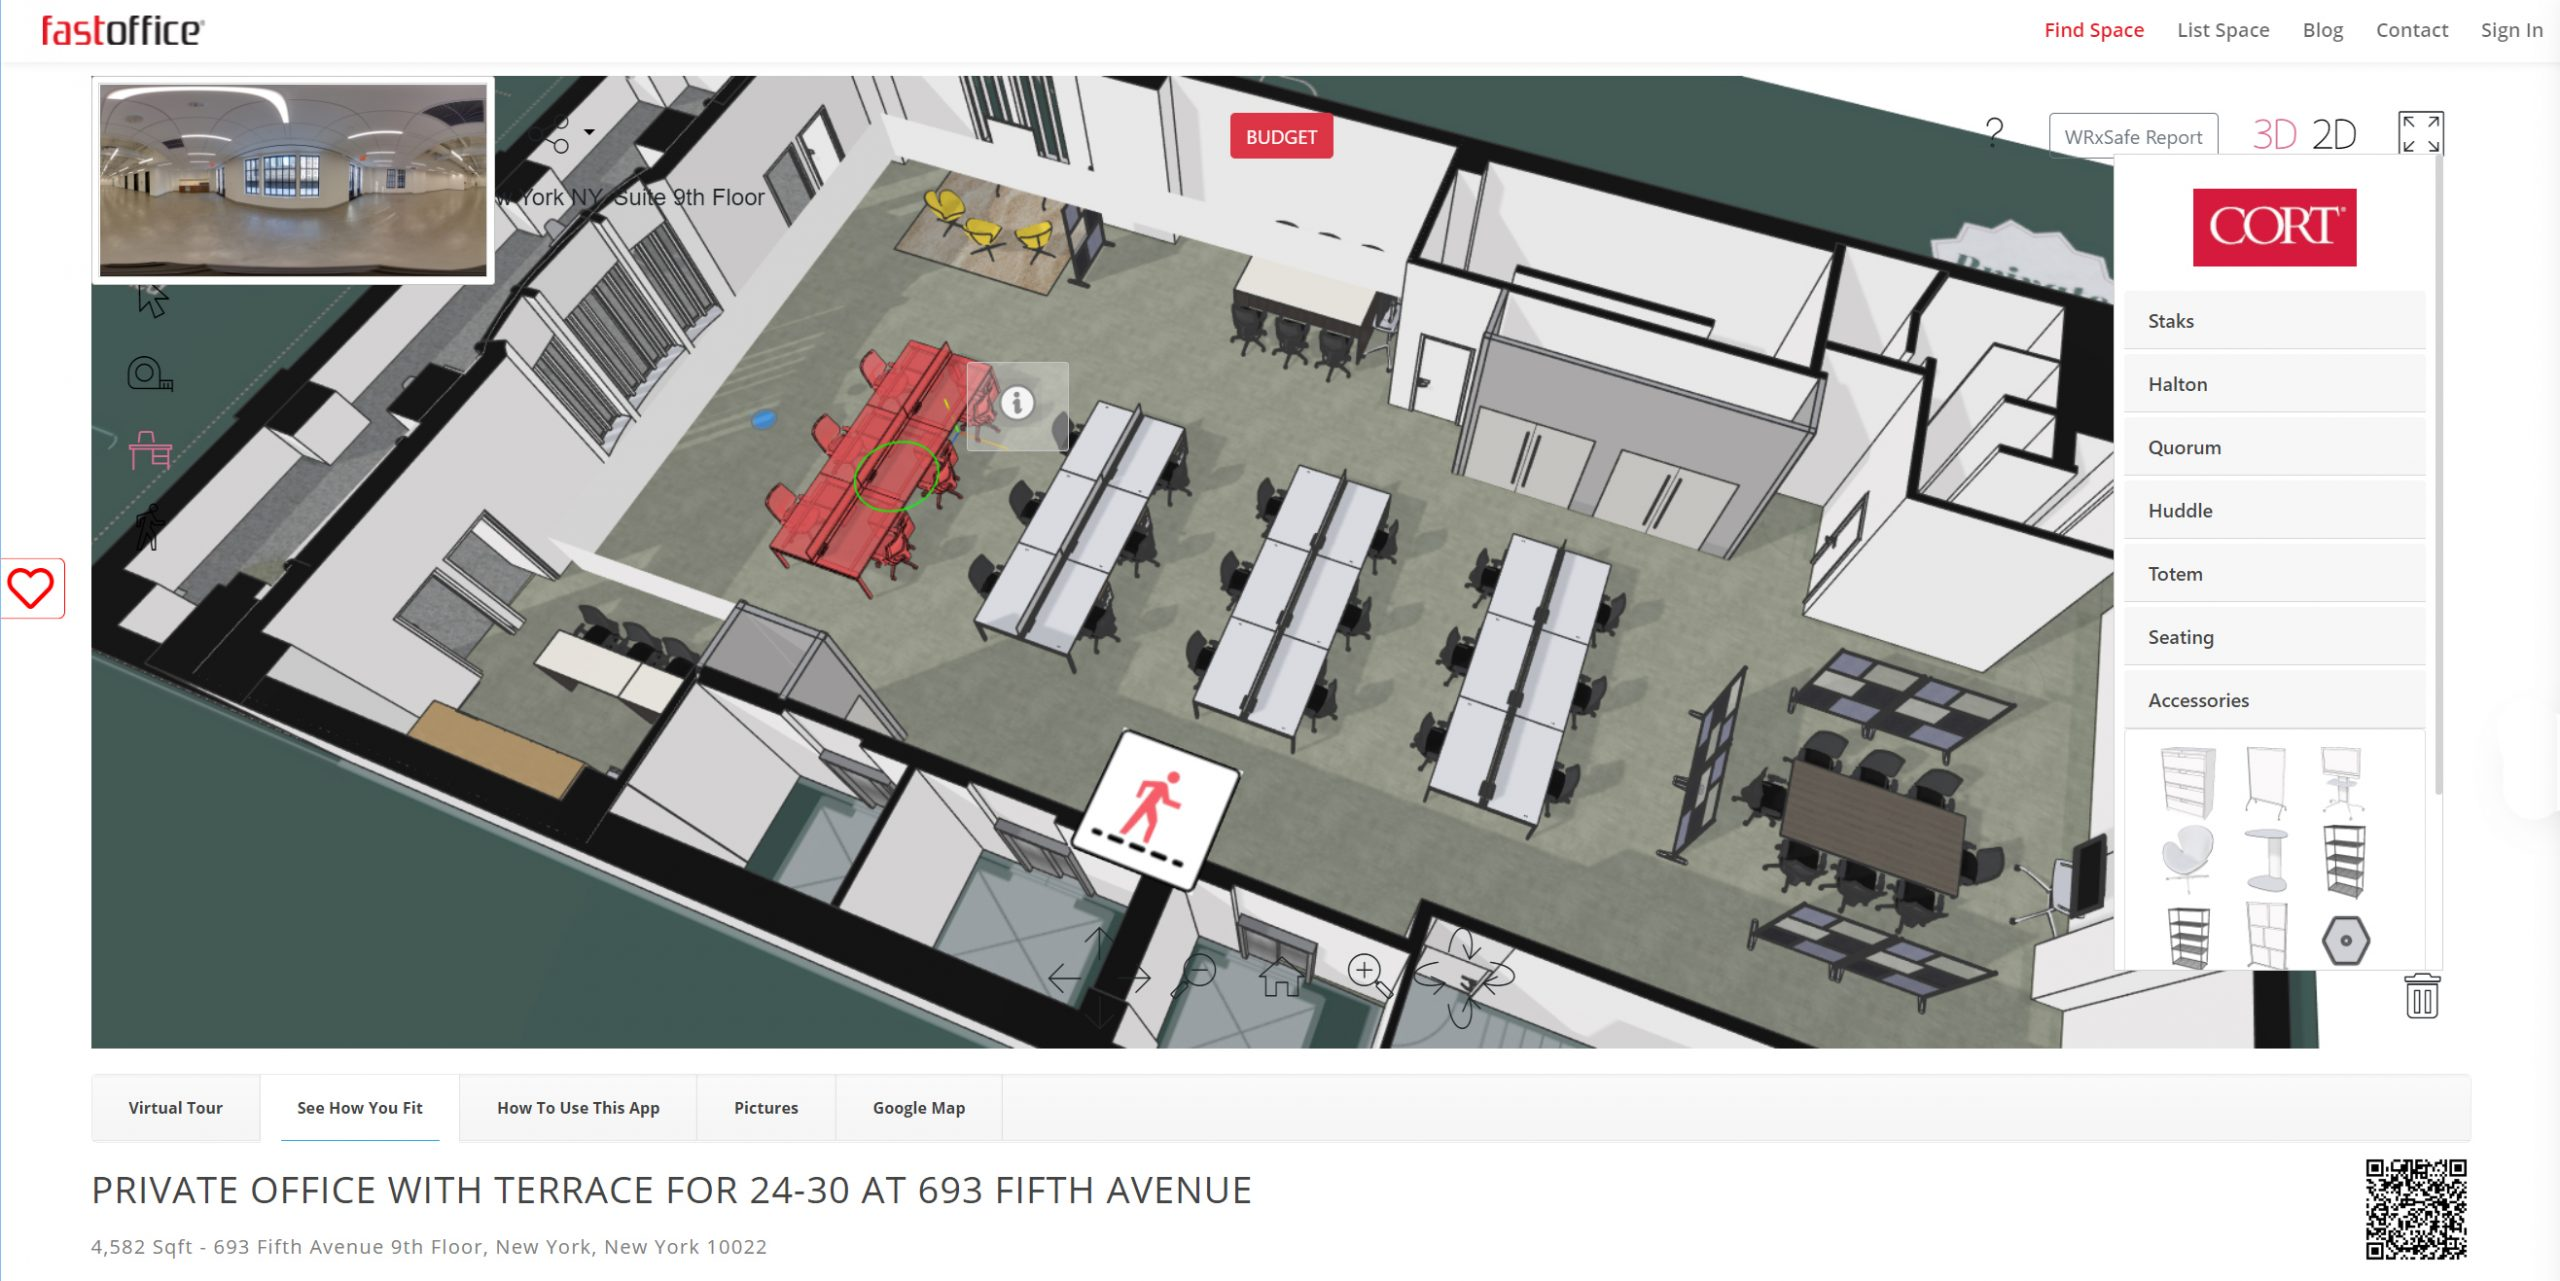 how to rent your space with fastoffice - step 2 customize the layout